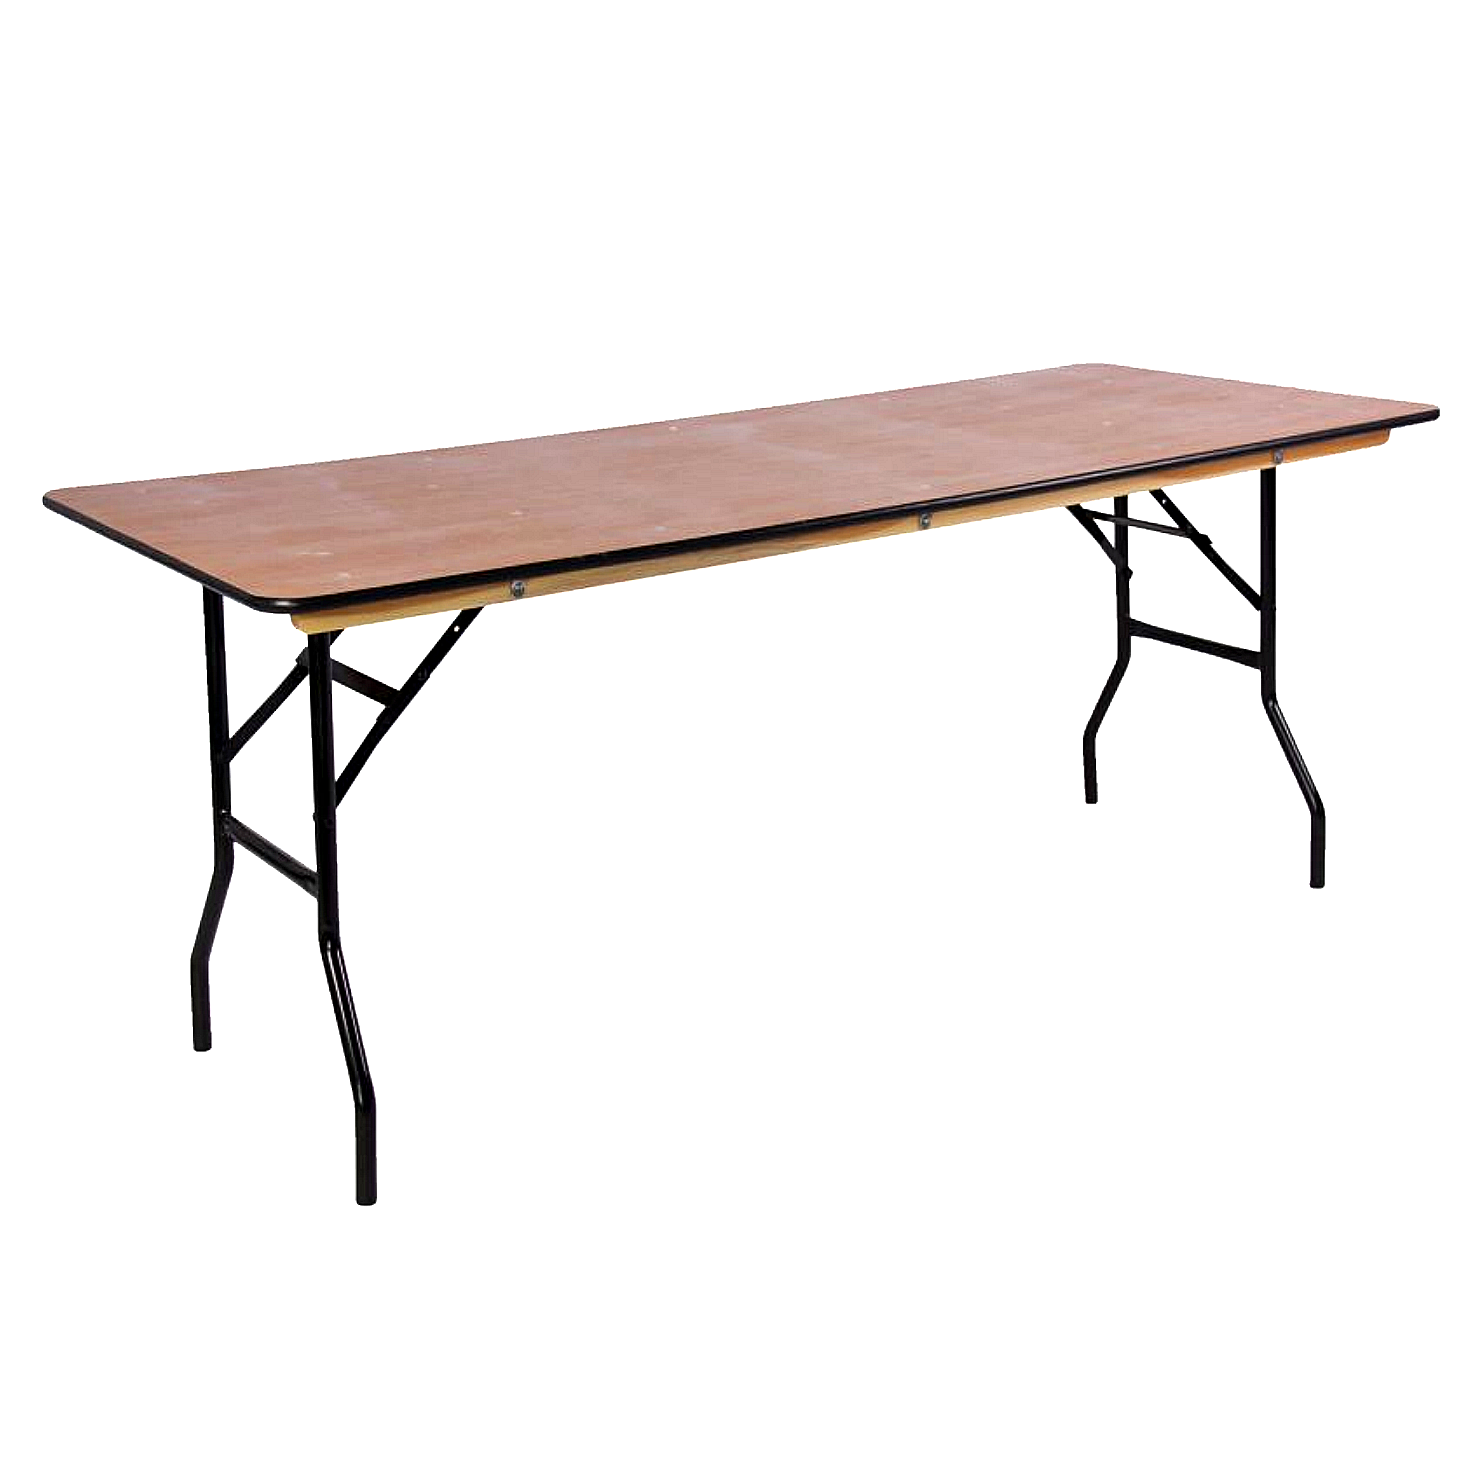 2 39 6 39 39 x 6 39 rectangle 39 trestle 39 tables chairman hire for 6ft sofa table